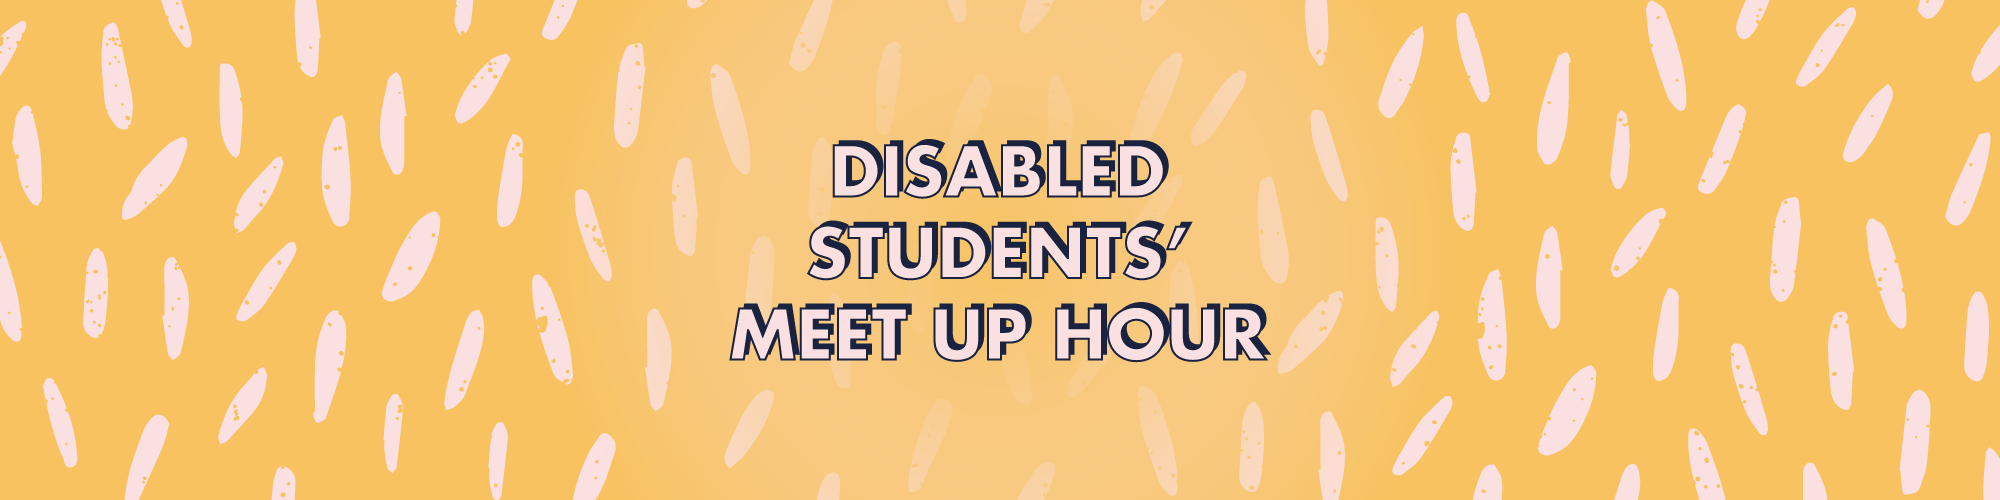 Disabled Students' Meet Up Hour